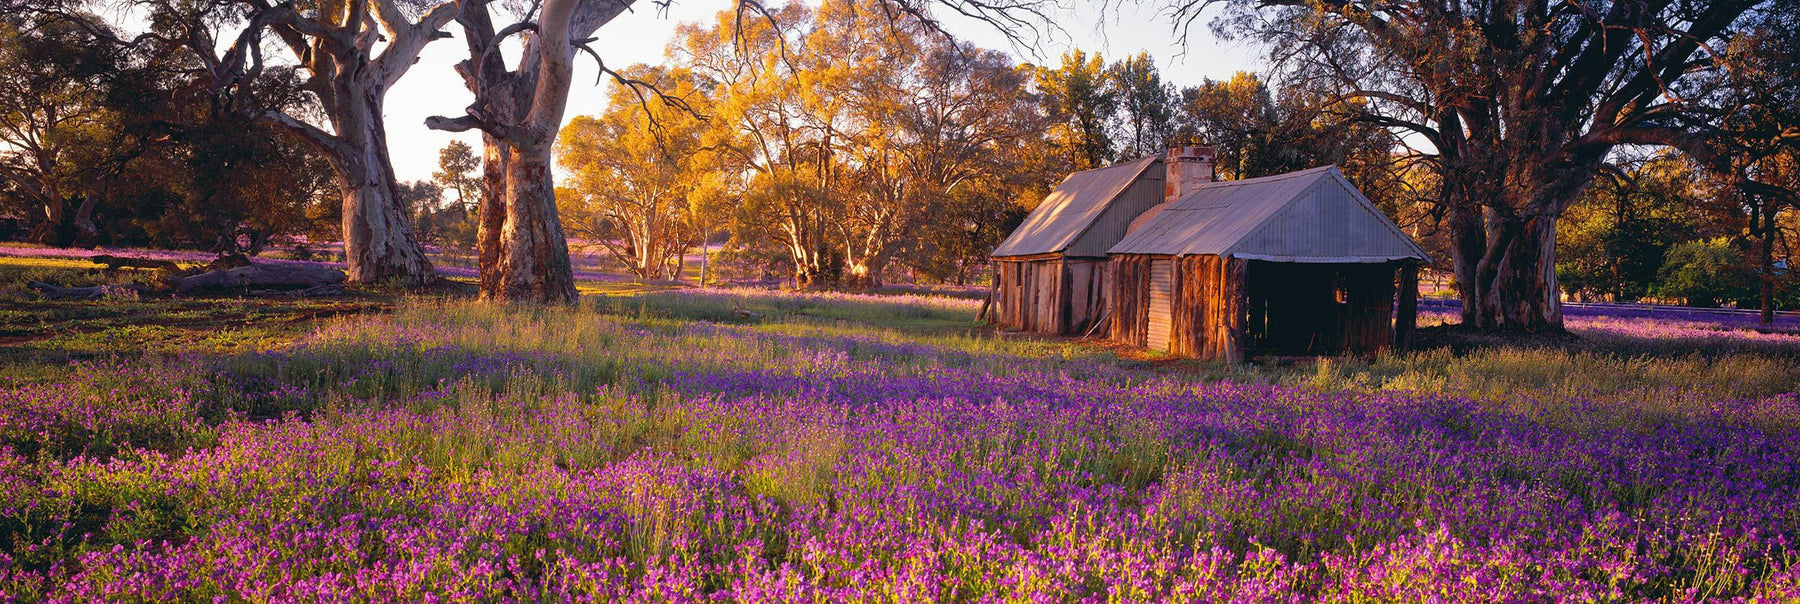 Old wooden shack in Wilpena Pound Australia surrounded by large gum trees and purple flower fields